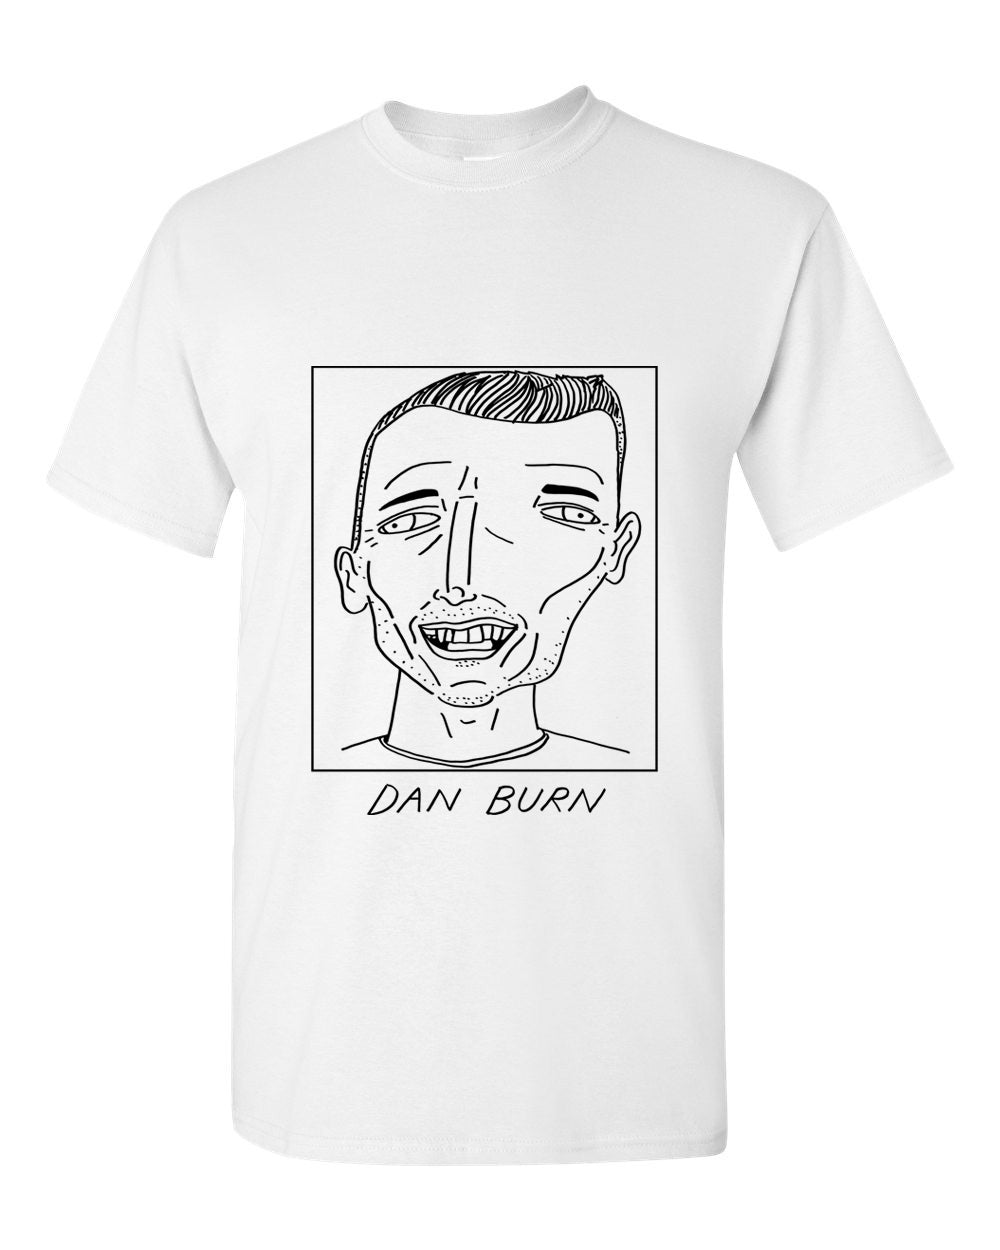 Badly Drawn Footballers T-shirt - Dan Burn